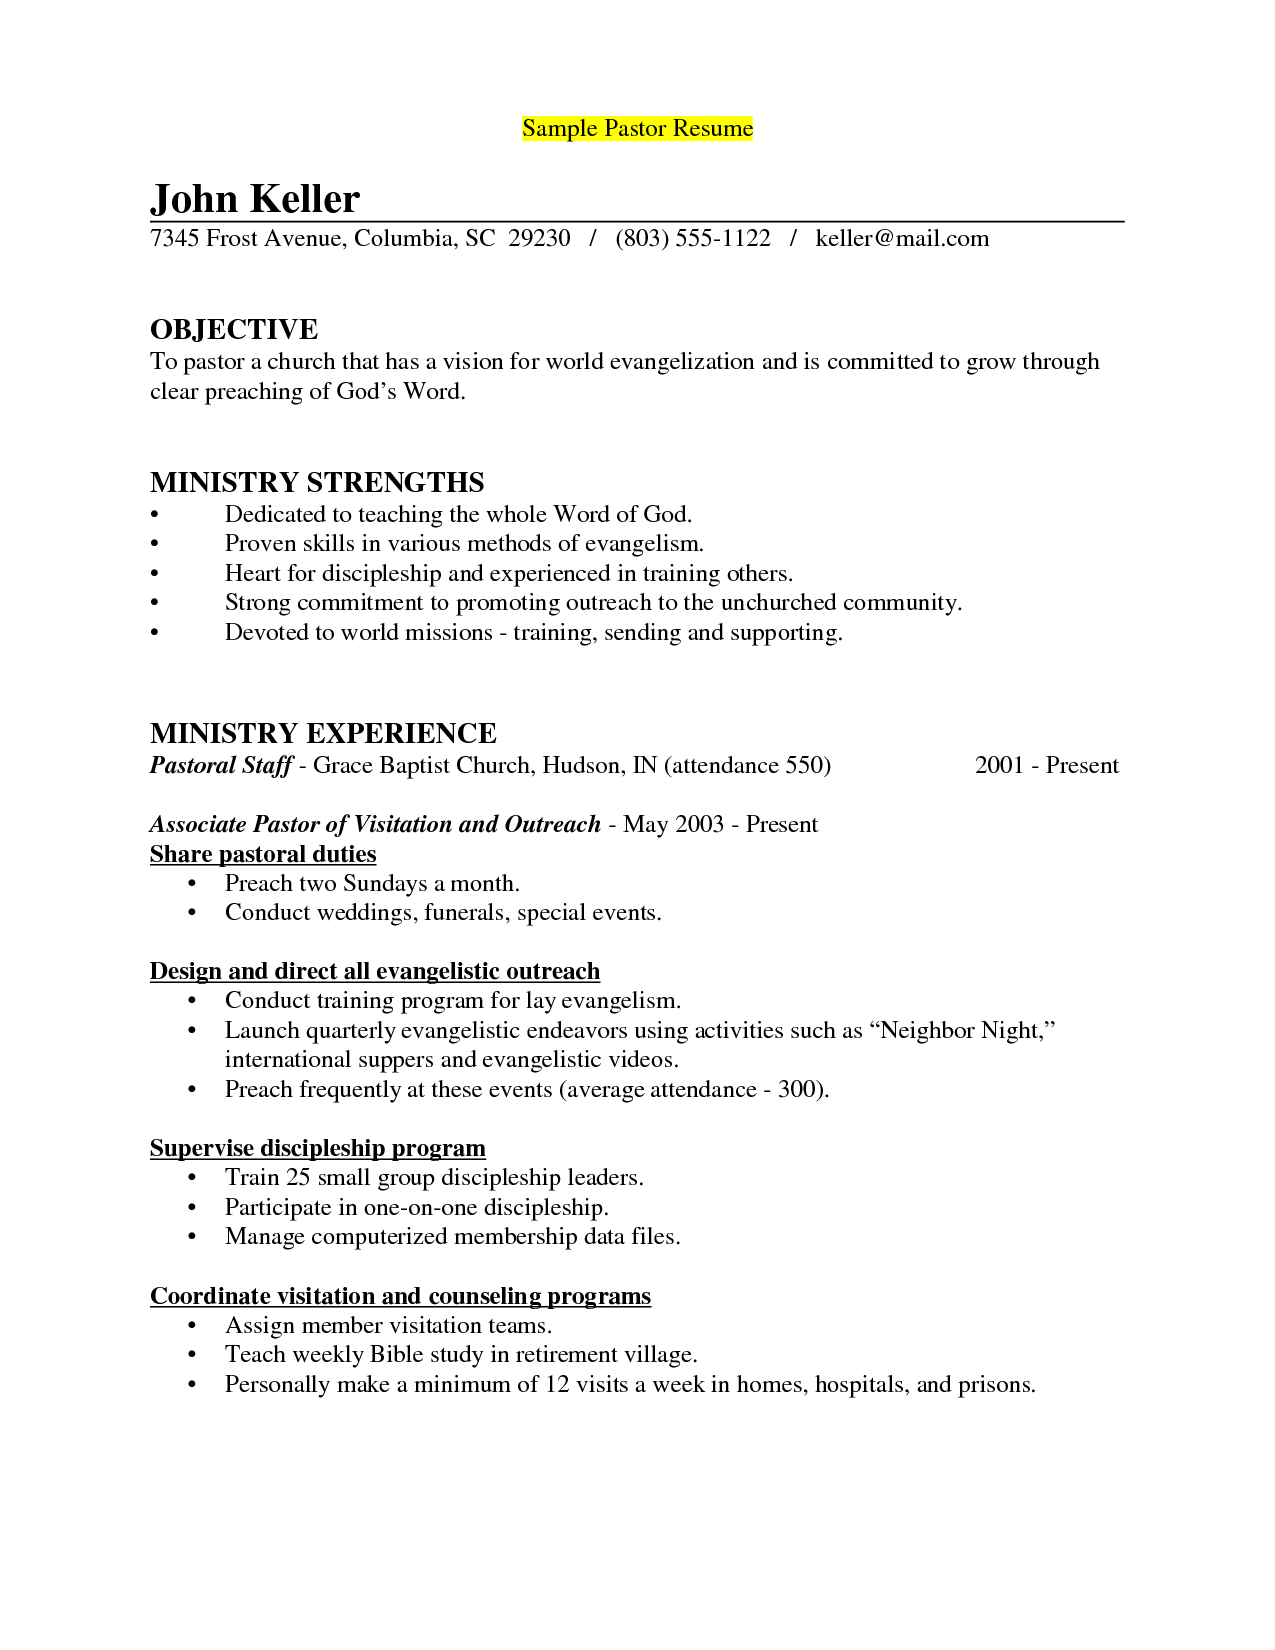 sample of a pastors resume | Sample Resumes for Senior Pastors ...